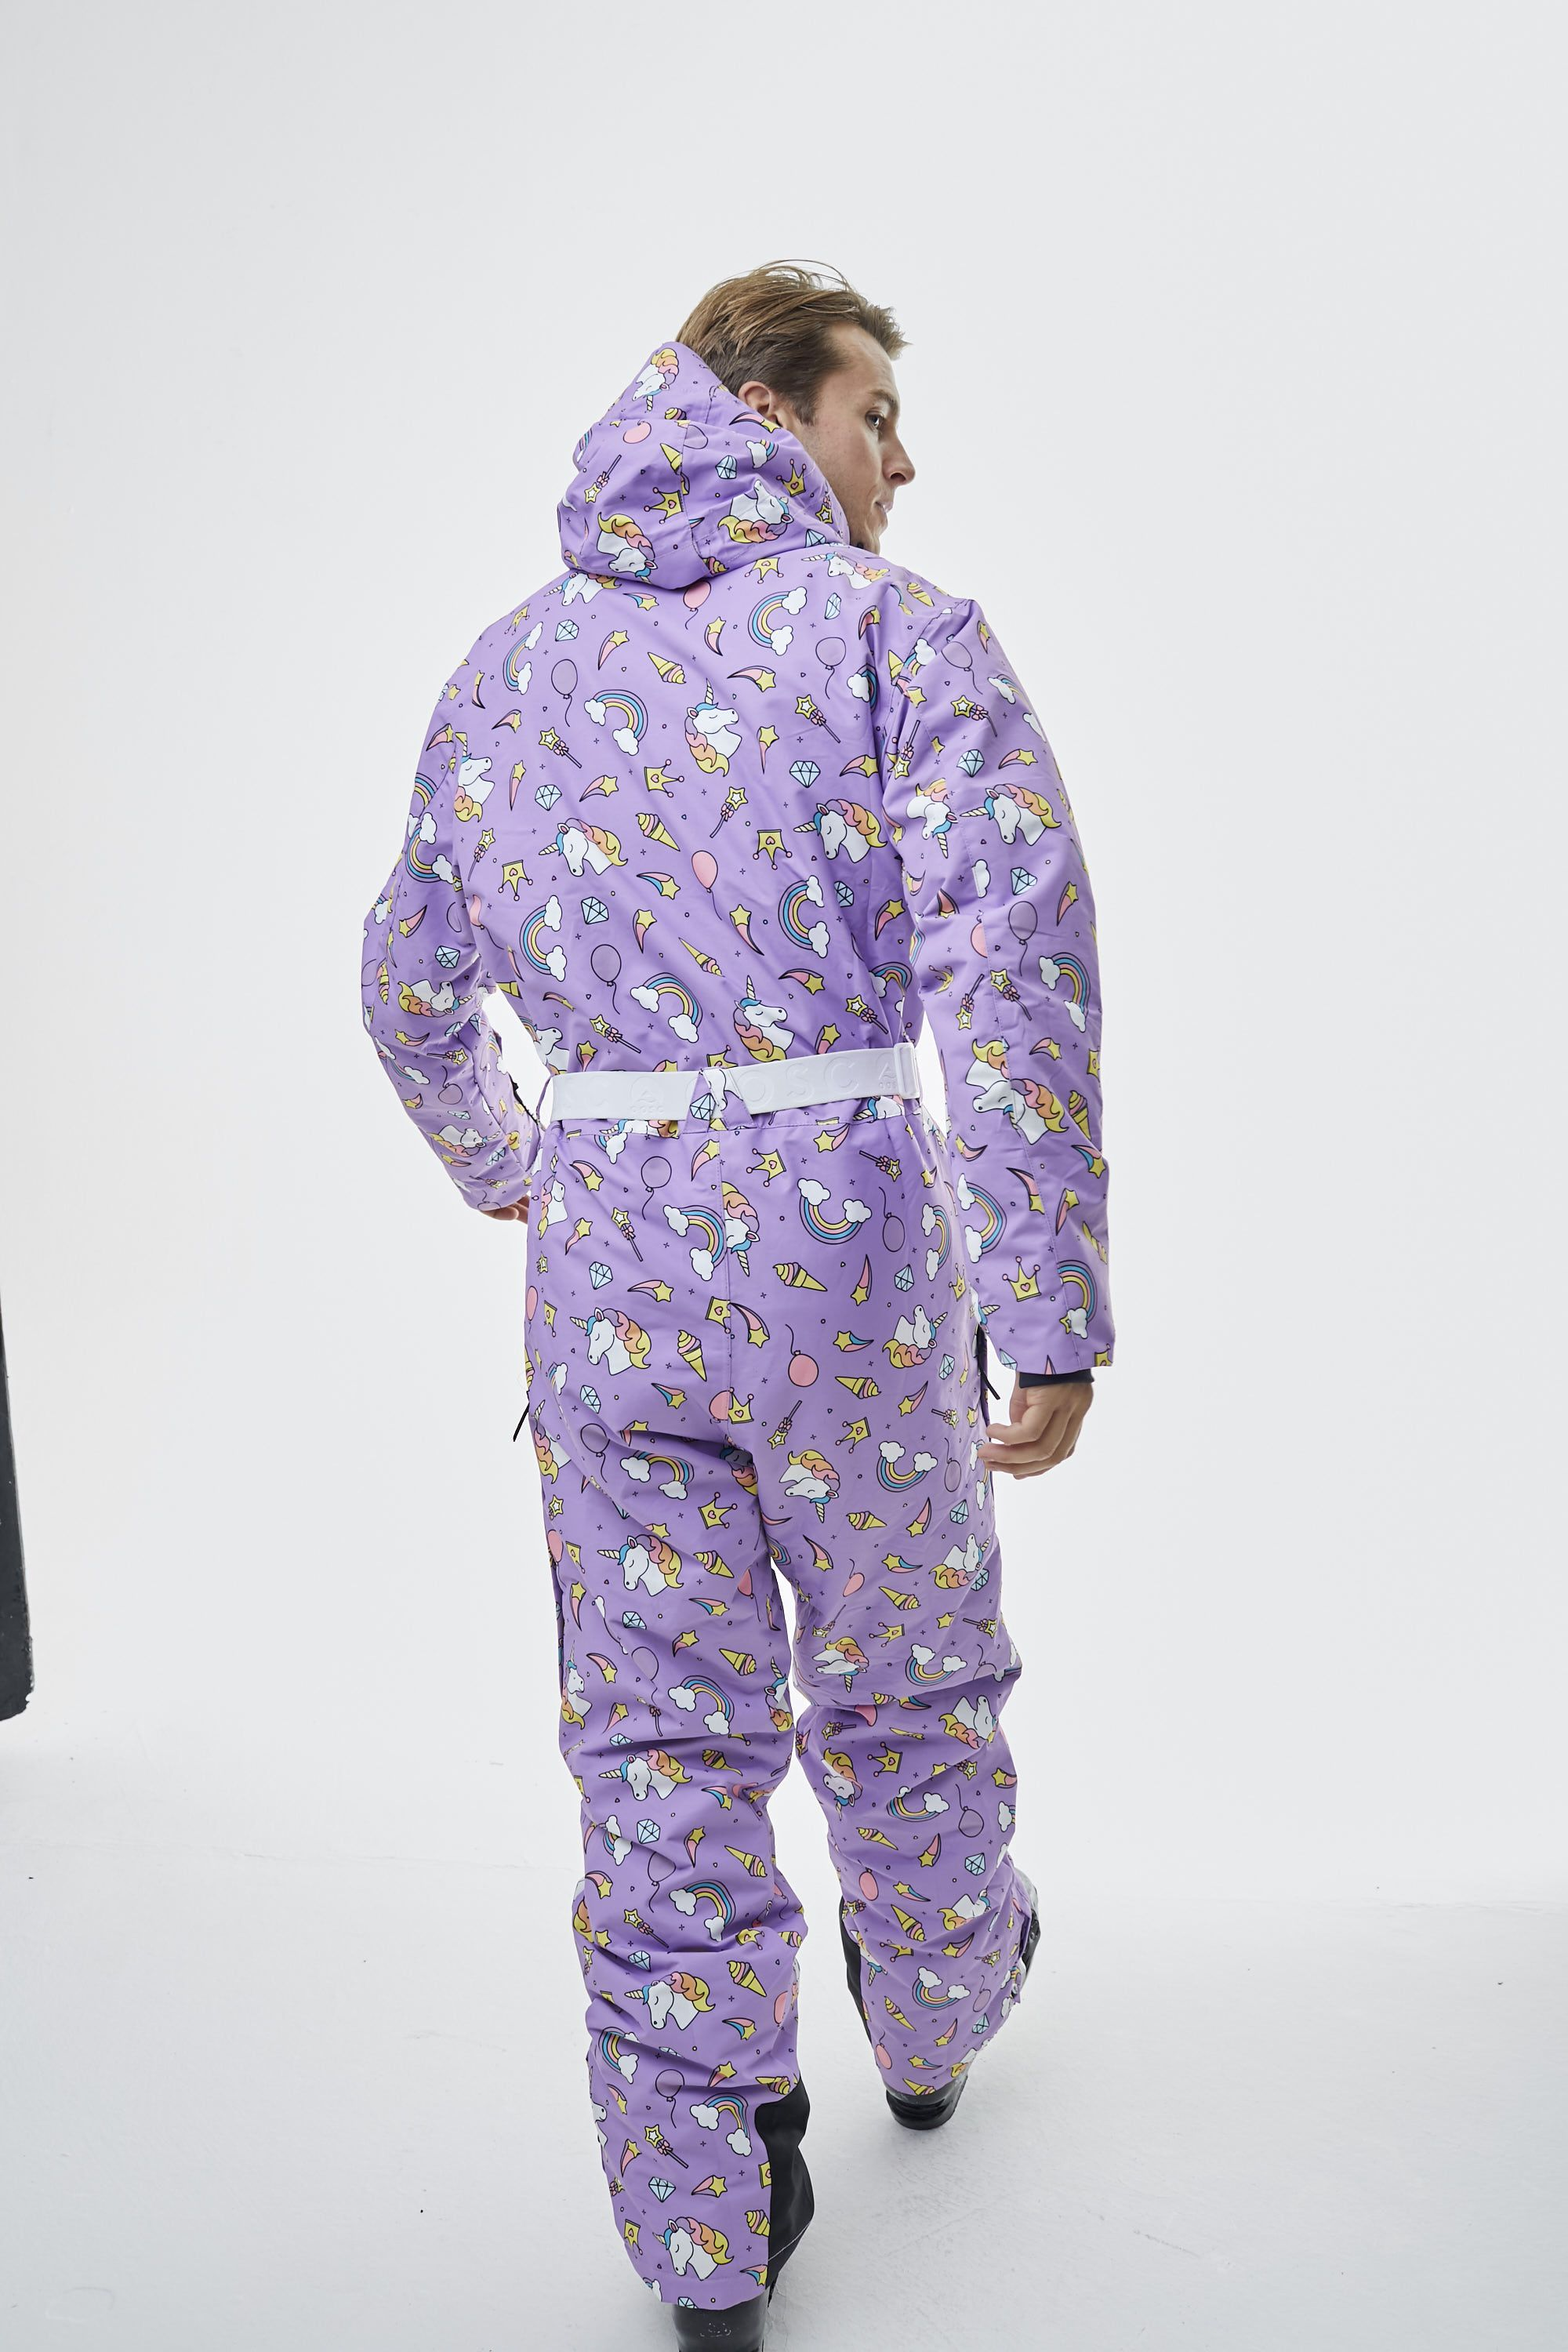 My Lil Unicorn Oosc One Piece Ski Suit Oosc Clothing One Piece Clothes Fashion